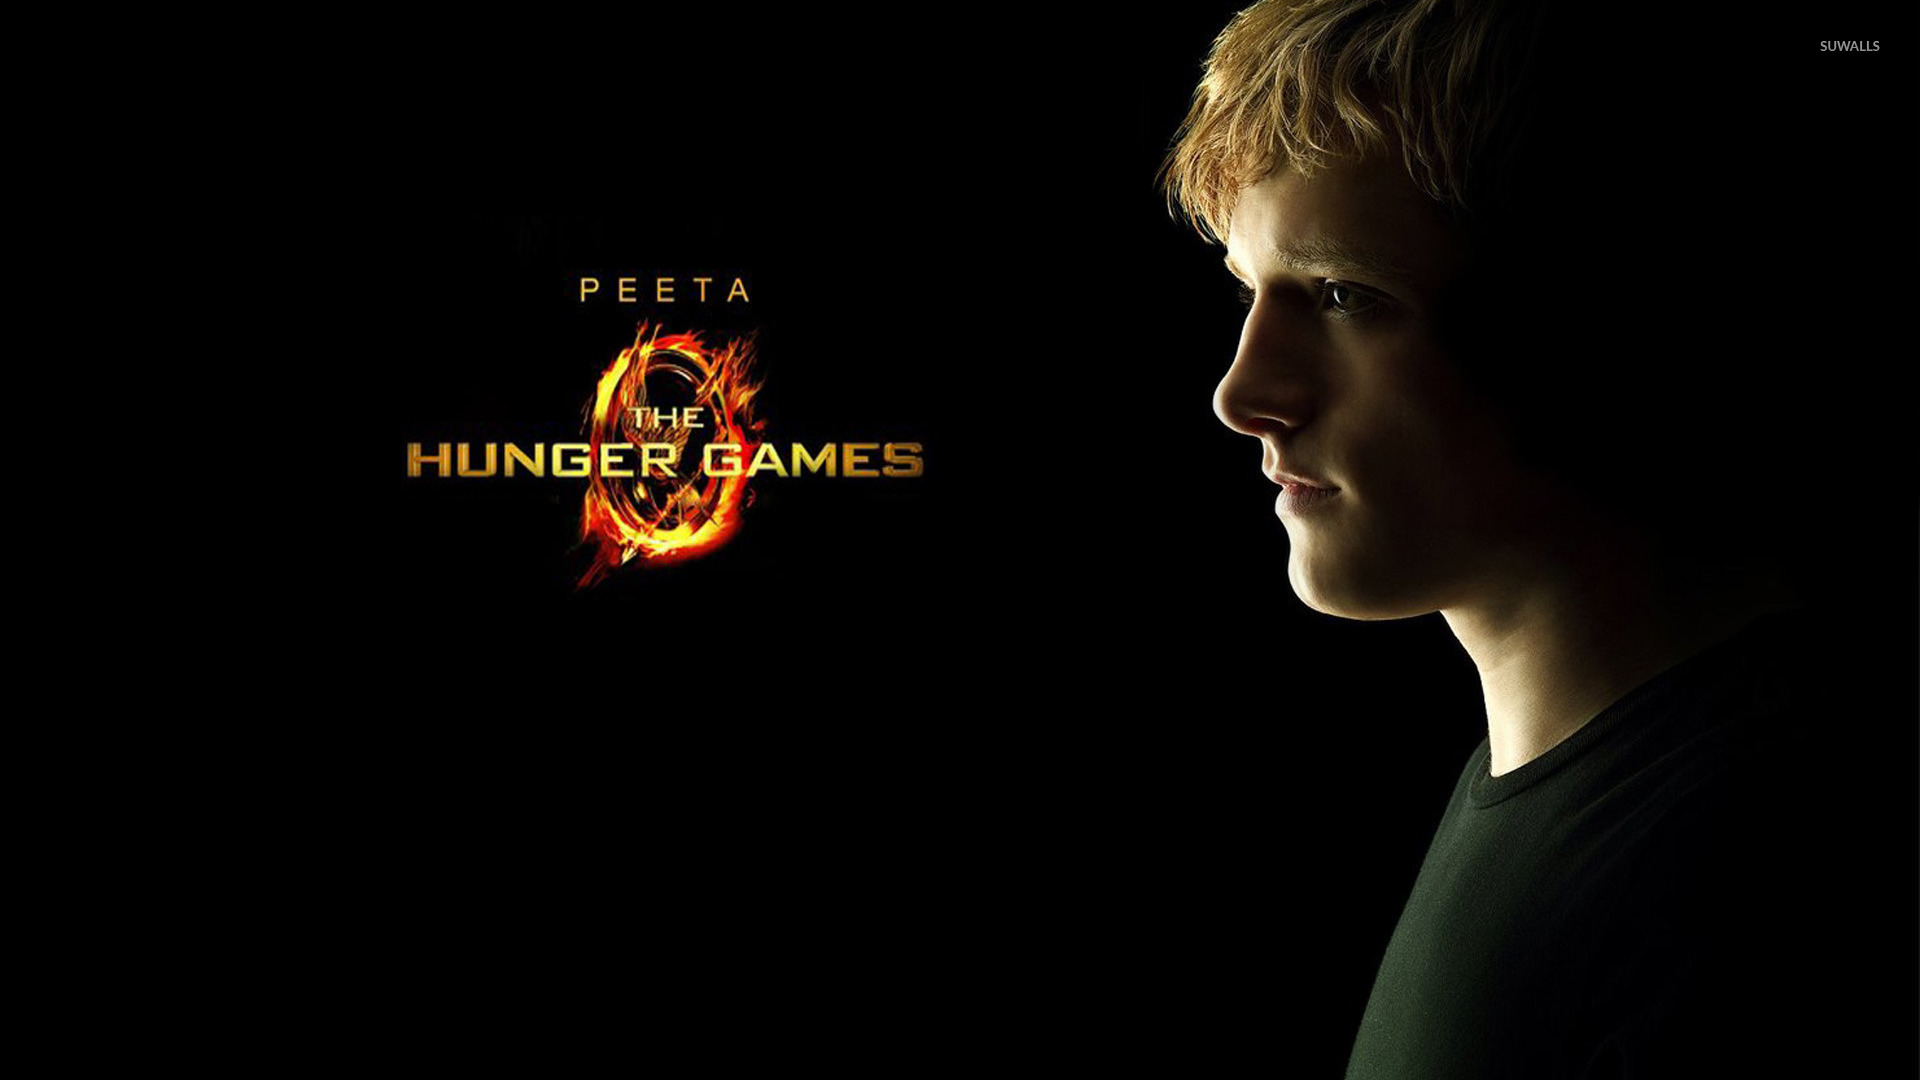 hunger games movie wallpapers - photo #4